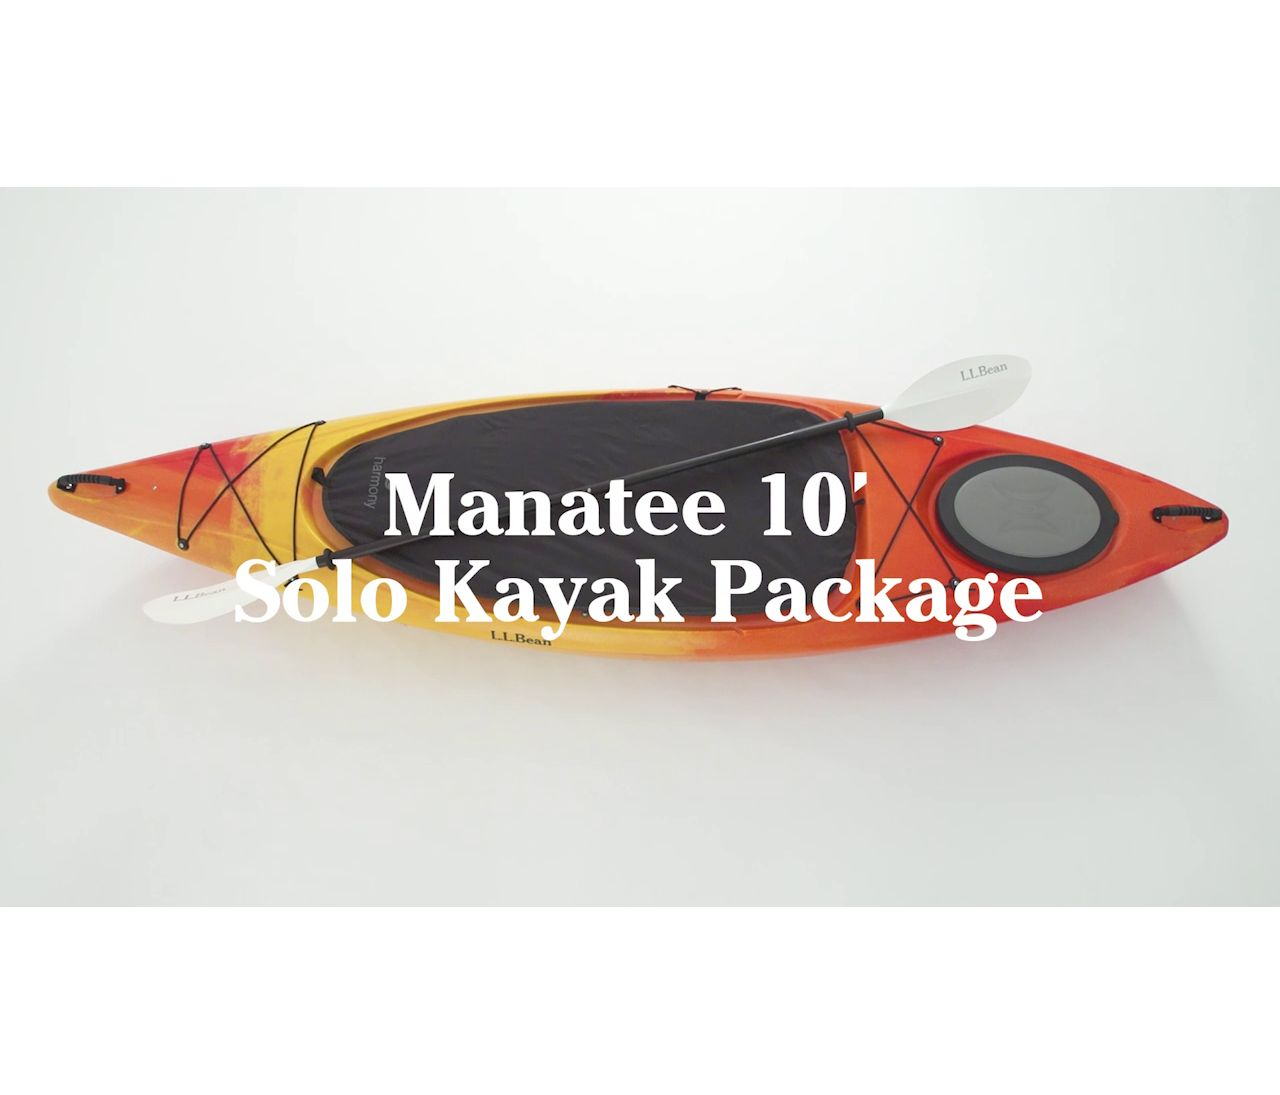 Video: L.L.Bean Manatee Kayak Package